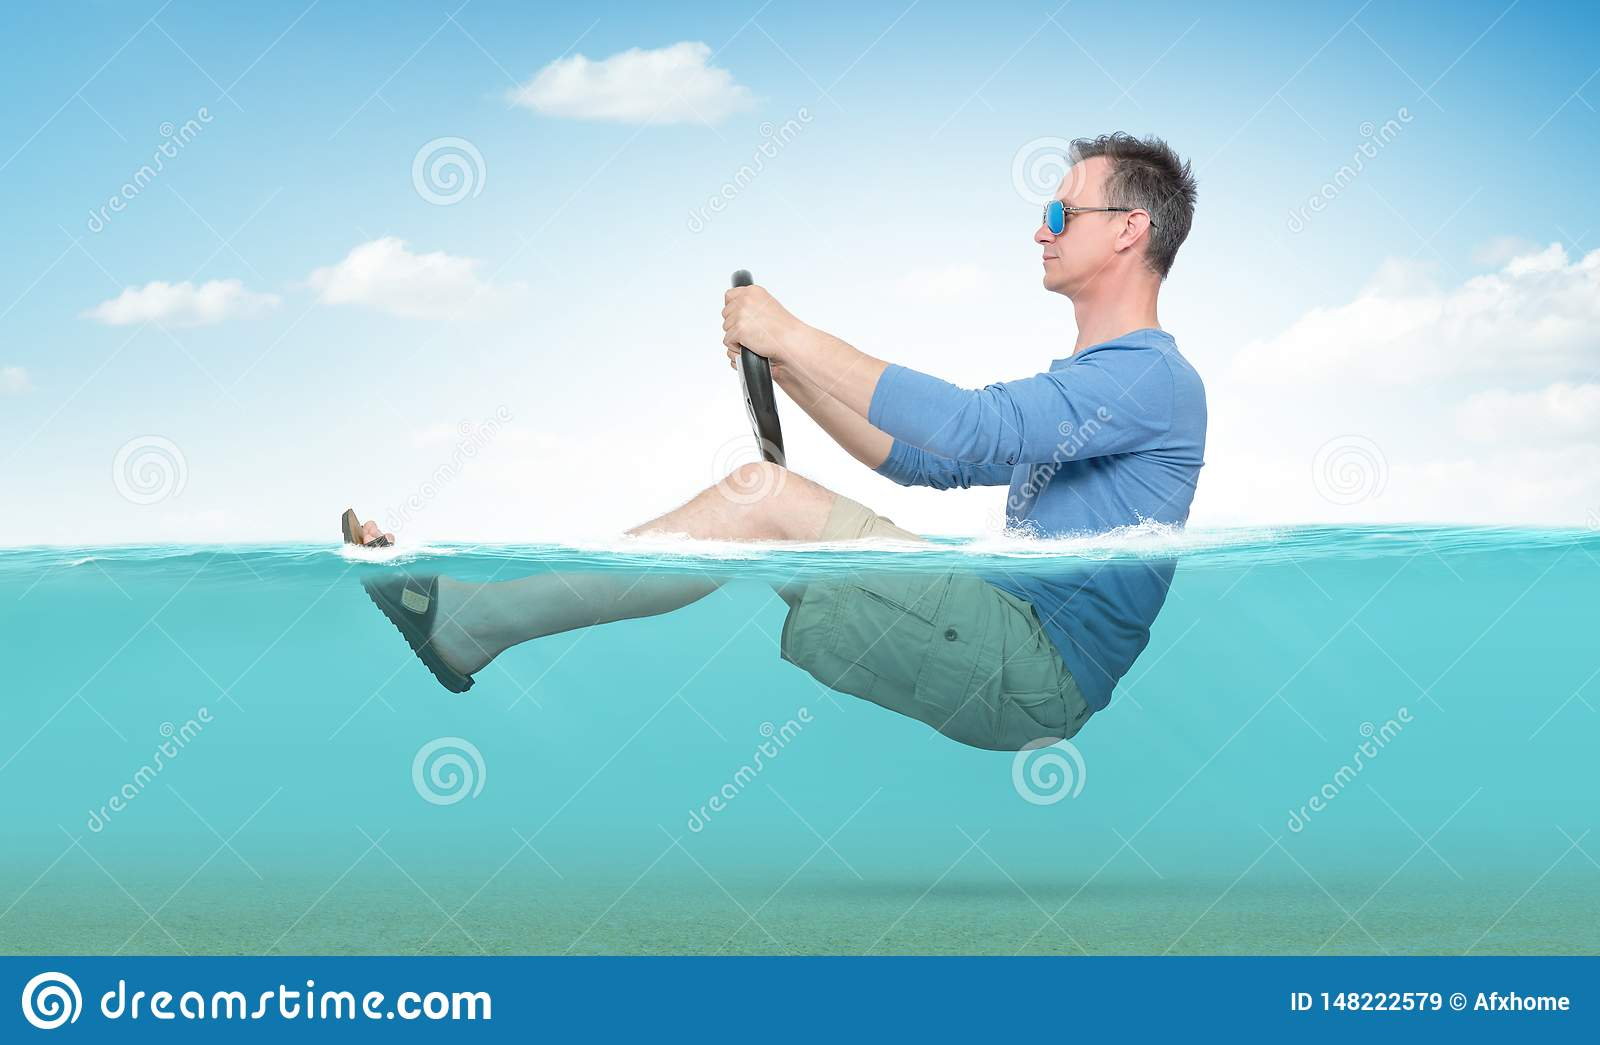 Funny man in sunglasses, shorts, T-shirt and sandals rides on the sea with a car steering wheel. Concept of going on vacation